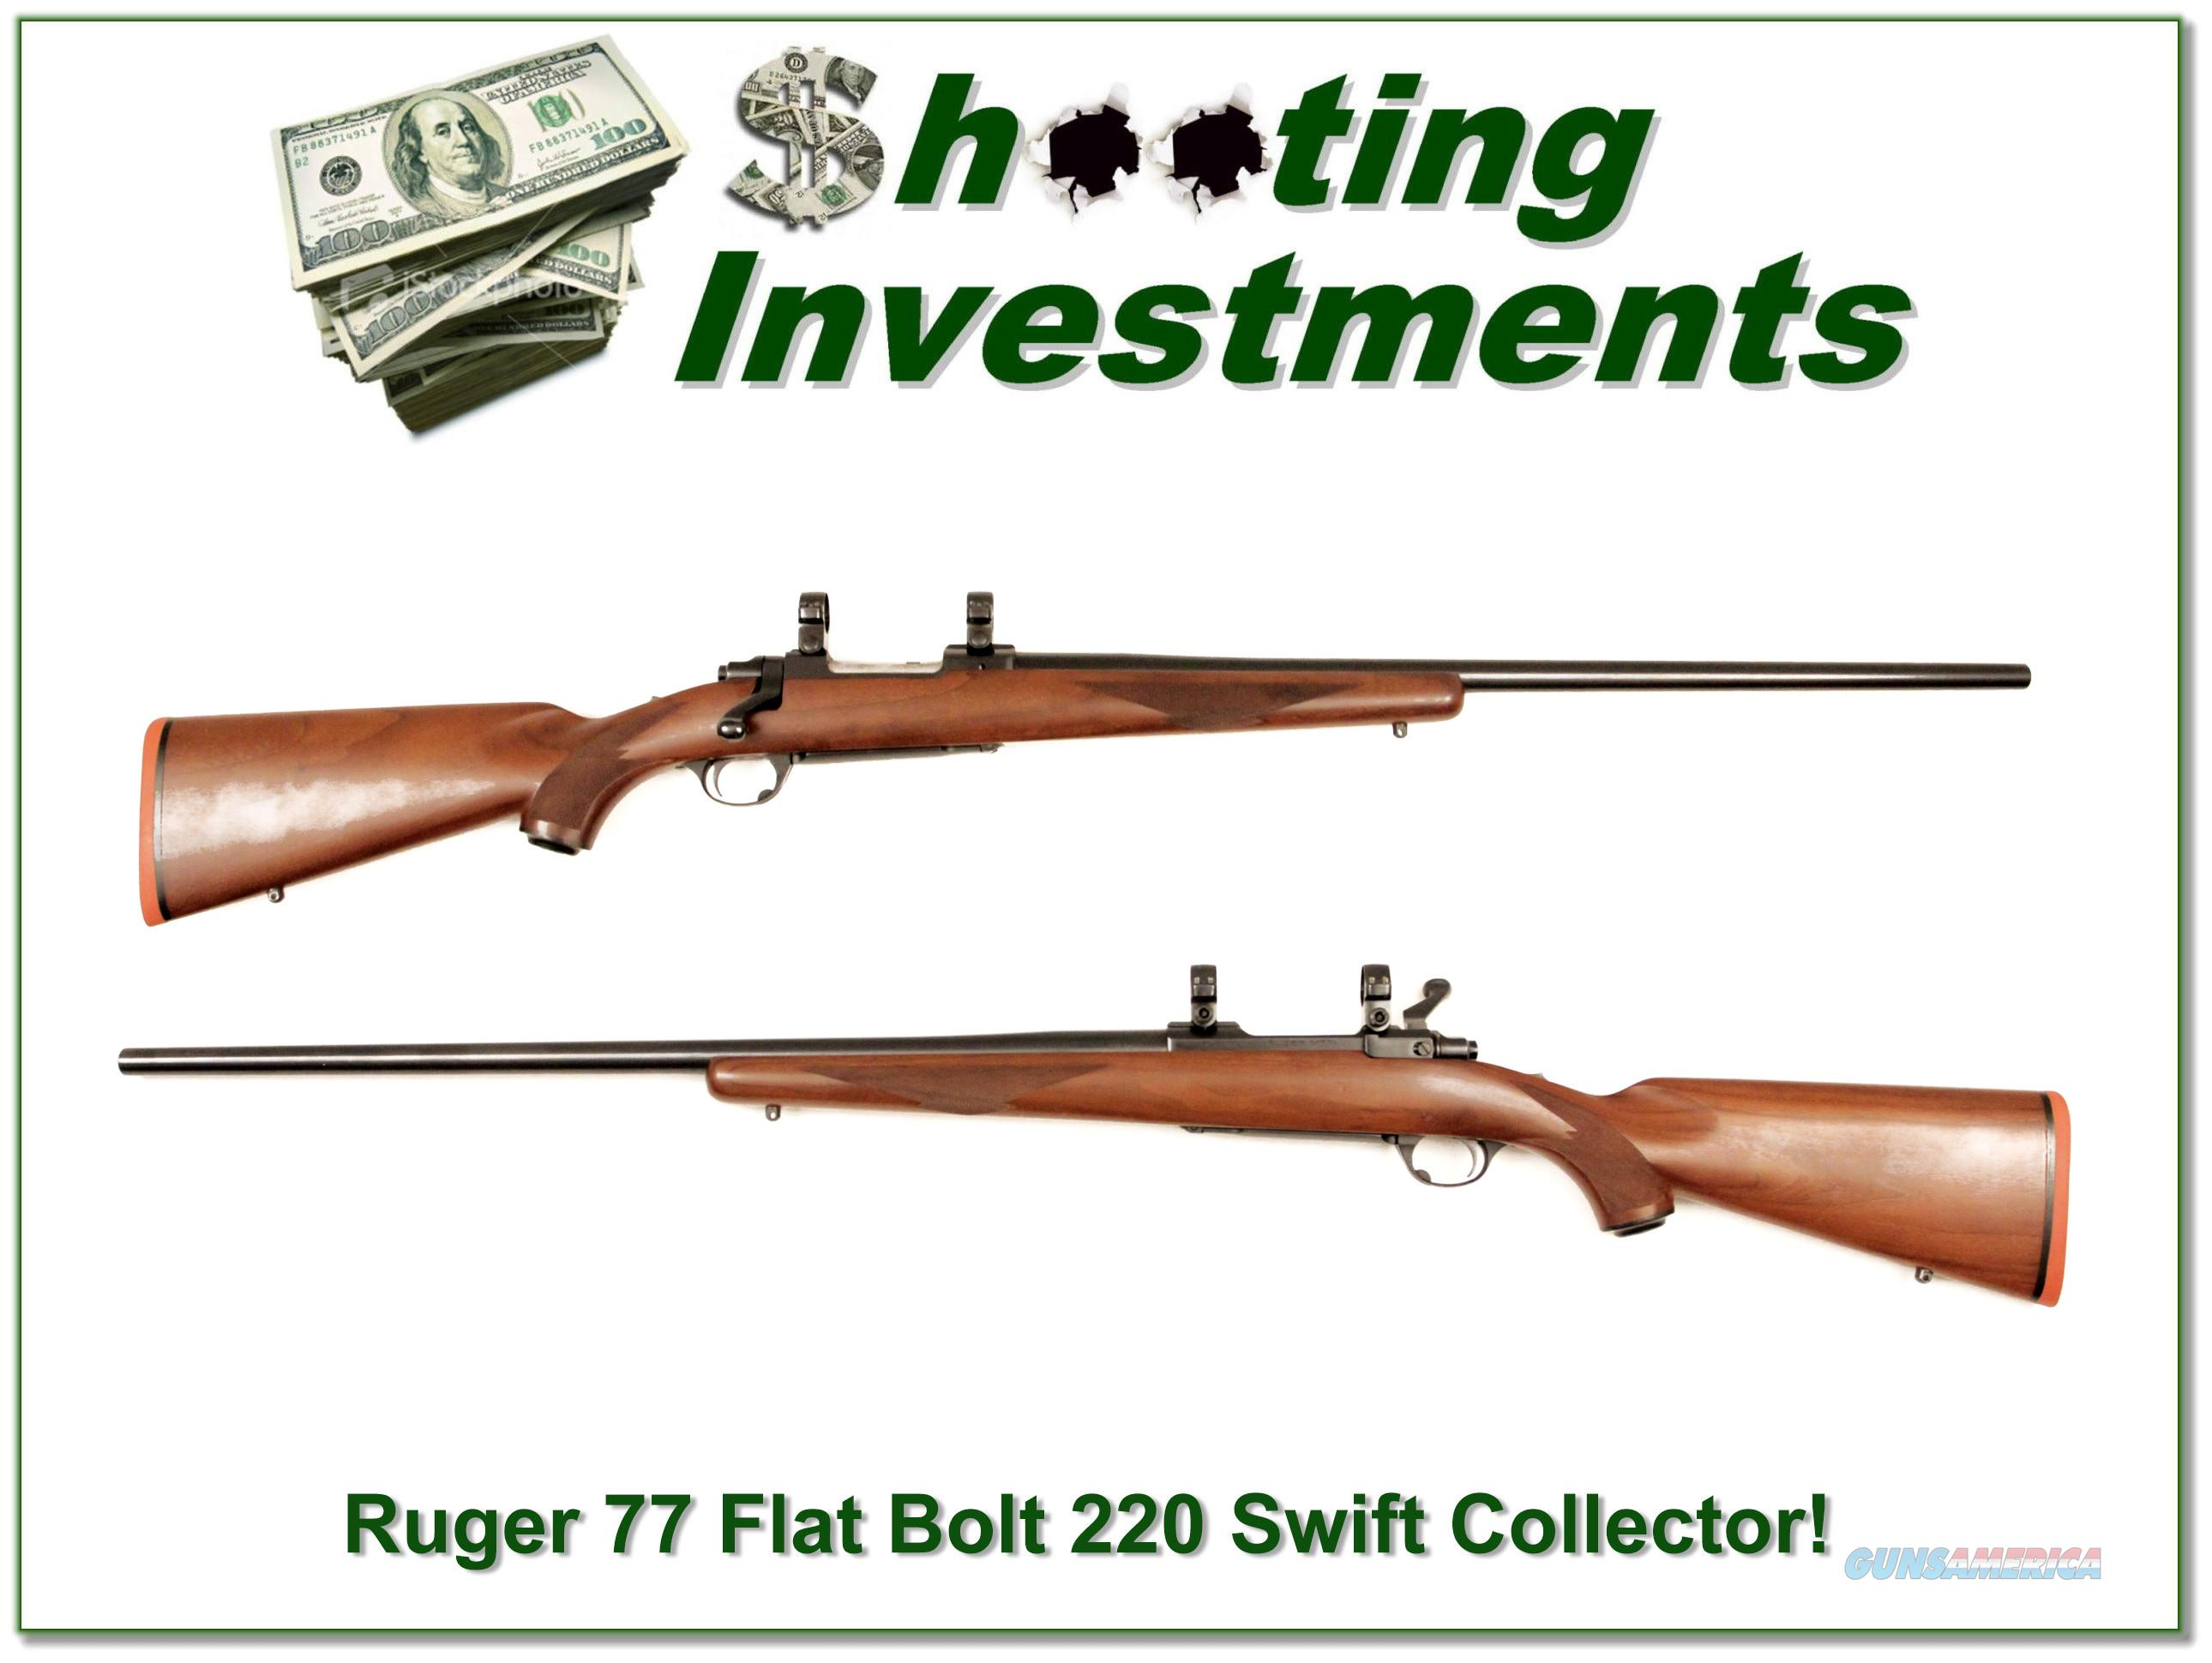 Ruger 77 Flat Bolt 220 Swift Medium Heavy barrel collector!  Guns > Rifles > Ruger Rifles > Model 77